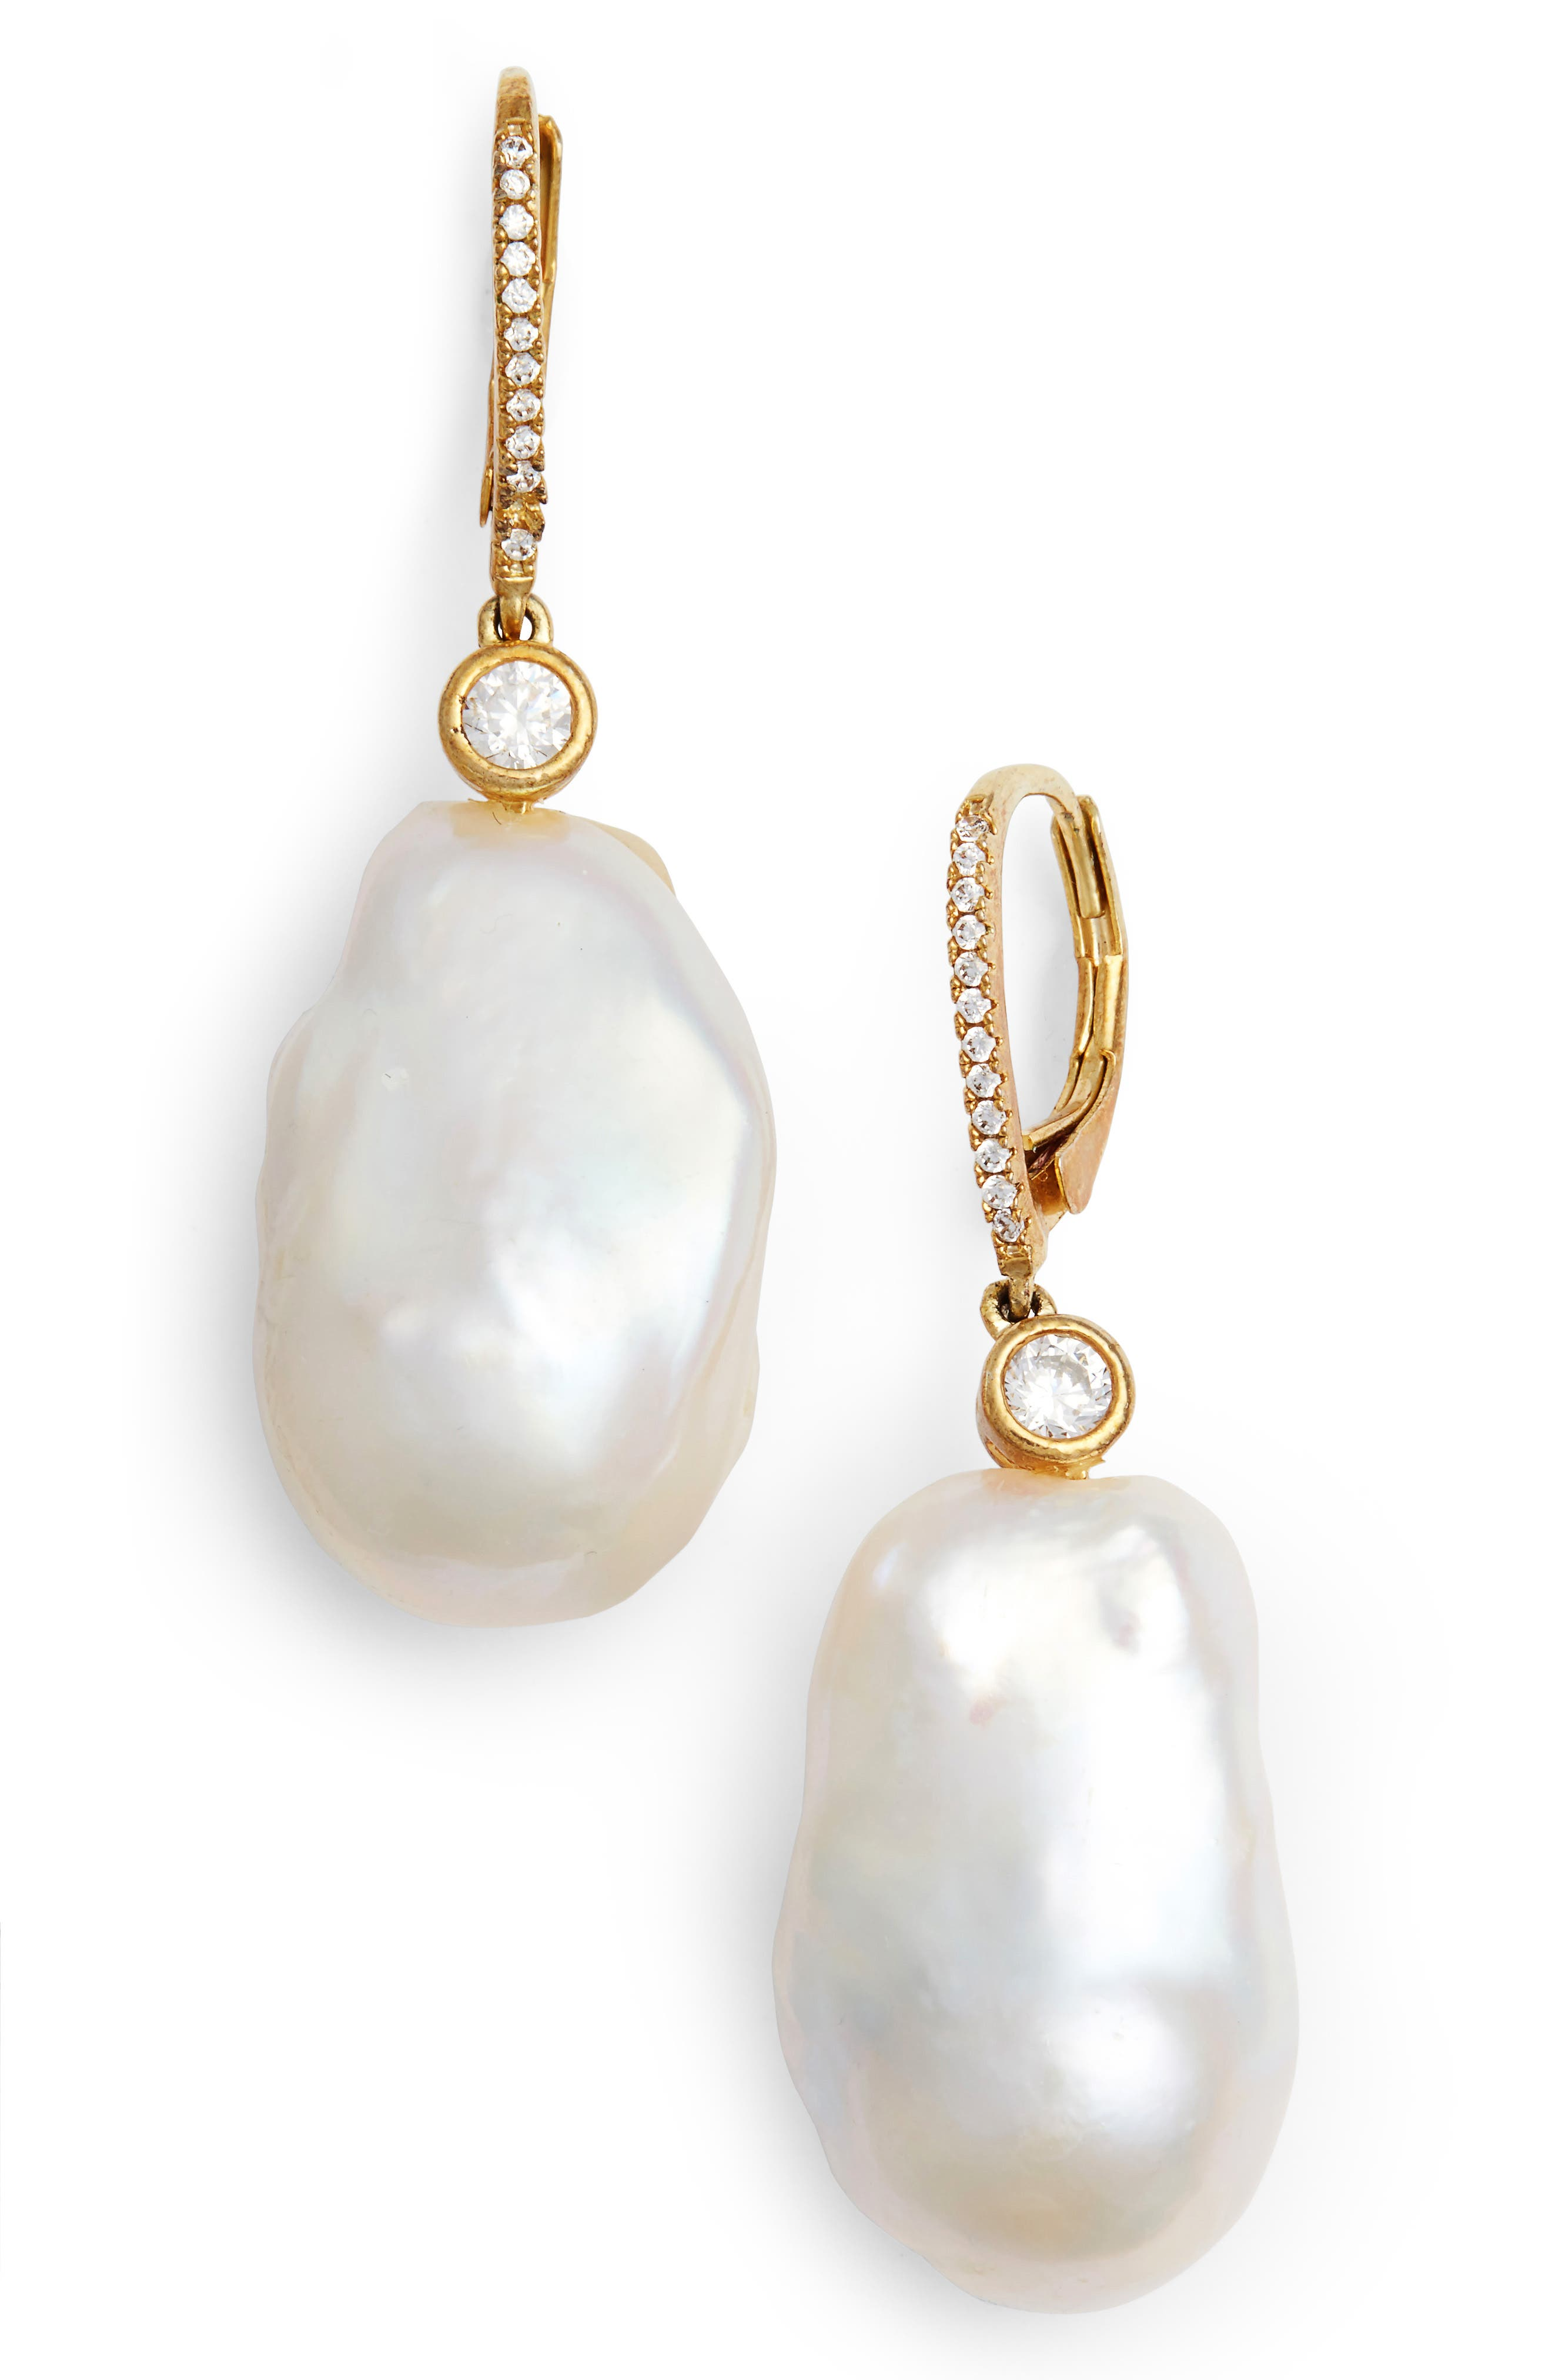 Baroque Pearl Earrings,                         Main,                         color, Gold/ Baroque Pearl/ White Cz